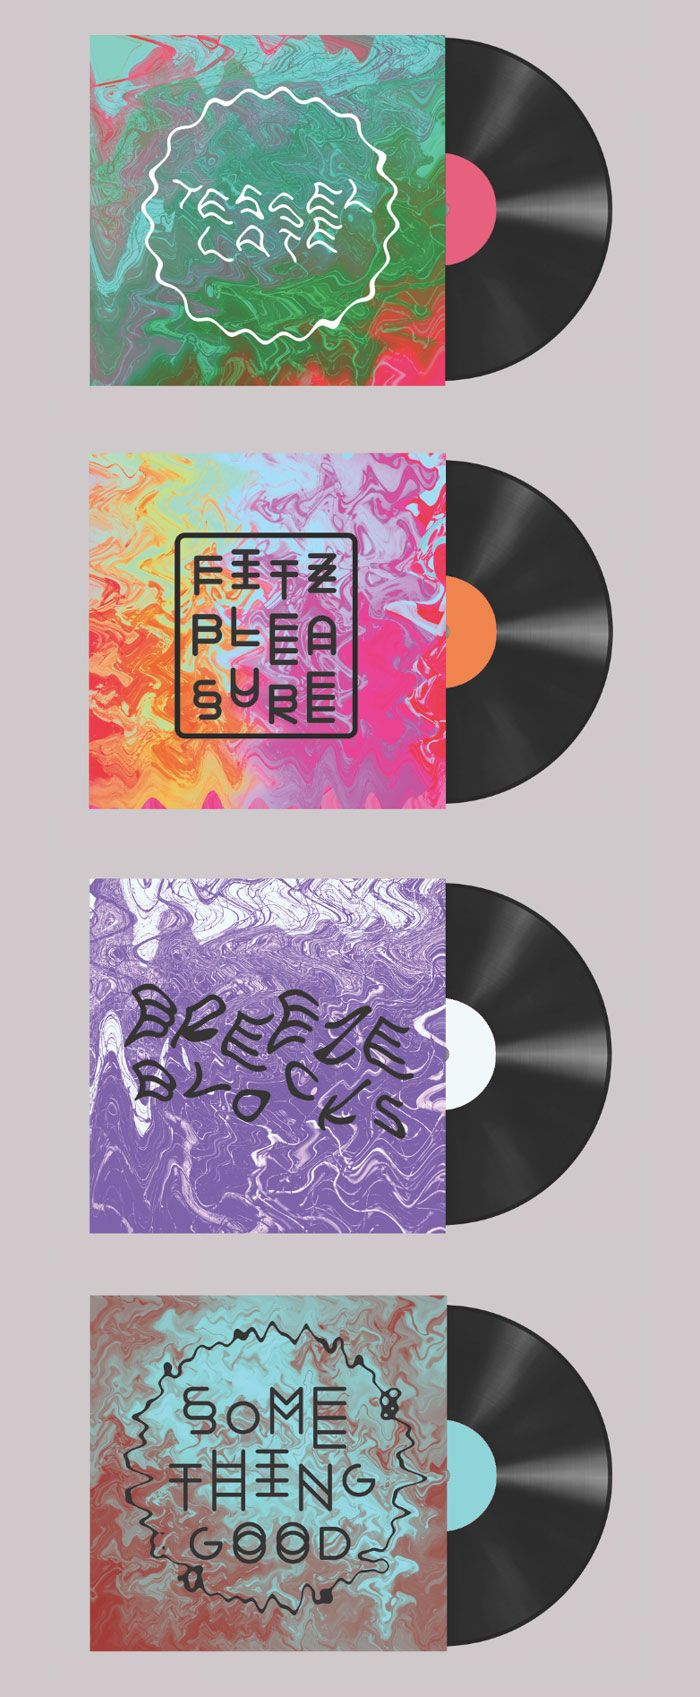 Eve Warren Record sleeve design concepts